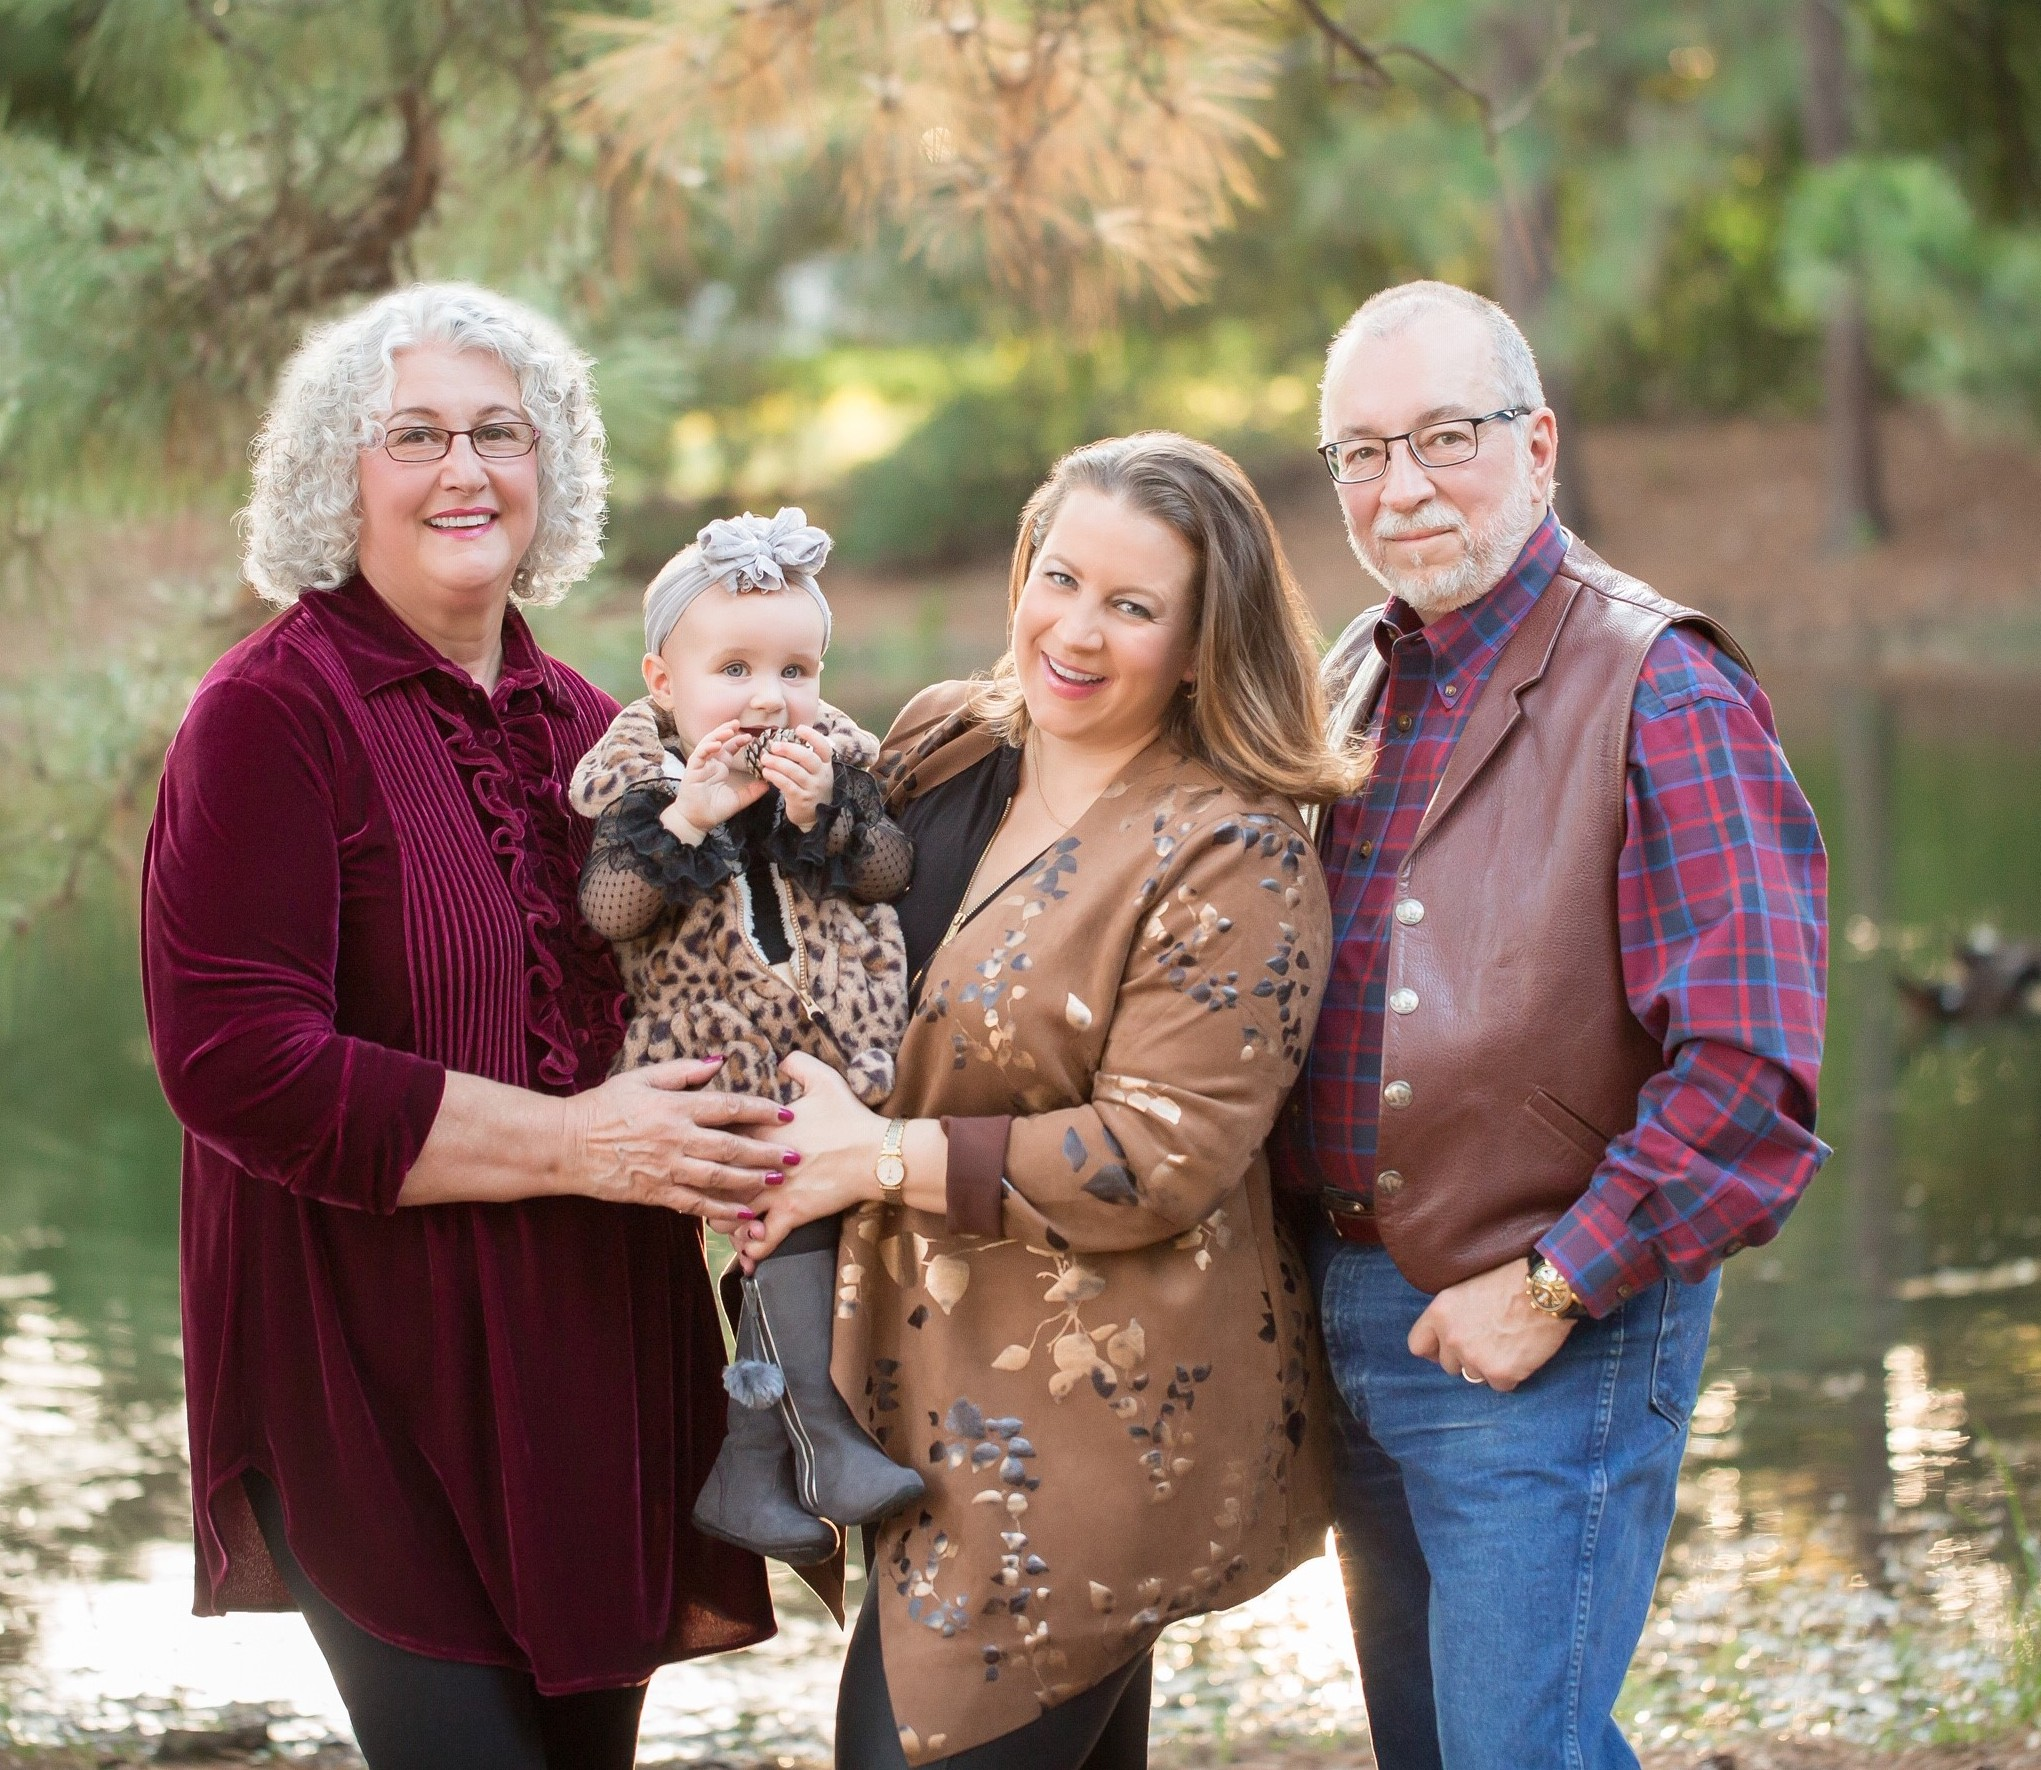 Primrose School of Bridgeland family of the month for August 2020 lives in Cypress, Texas 77433